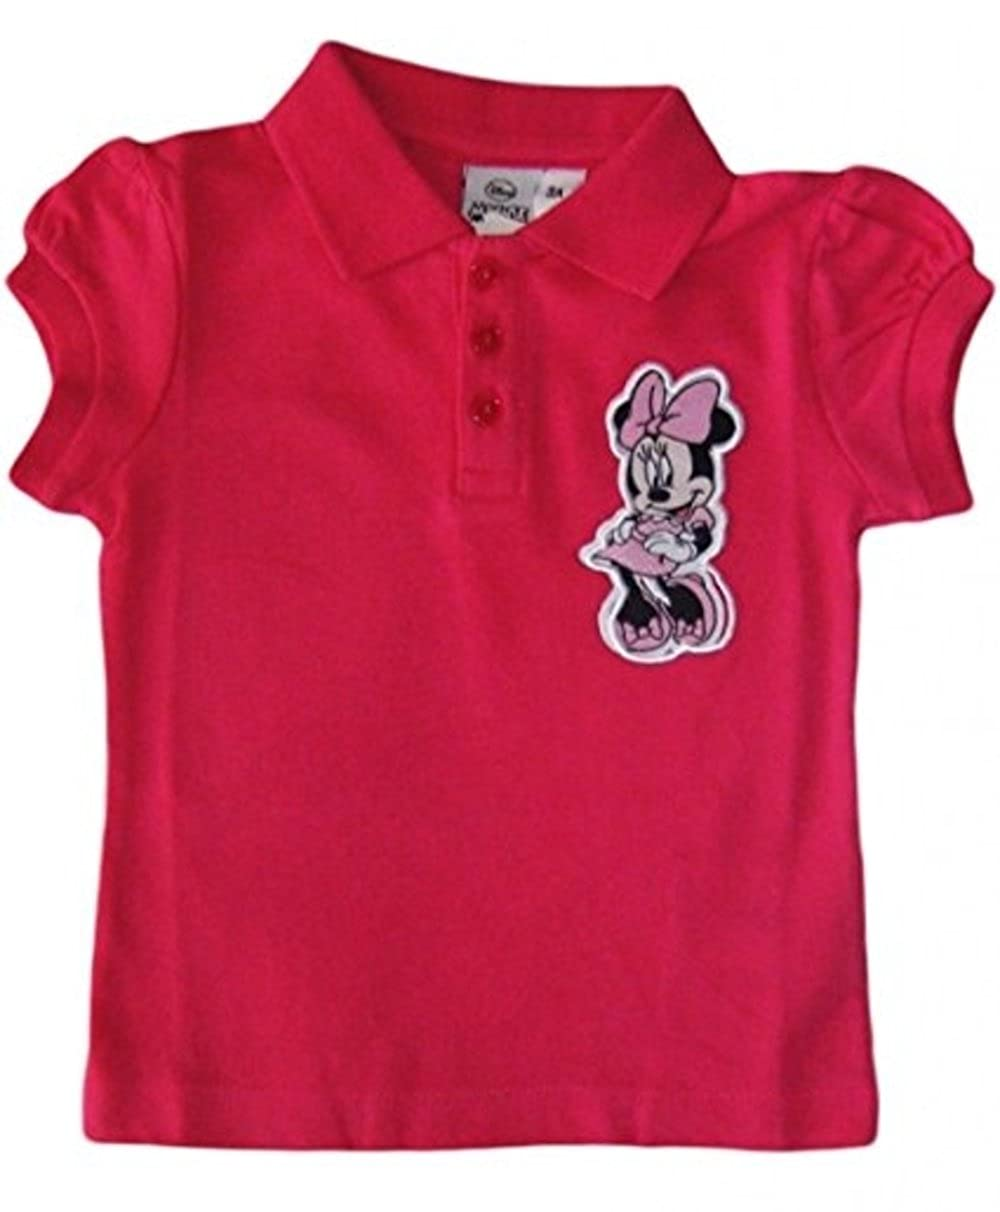 Girls Minnie Mouse Polo T Shirt/tee/top Sun City